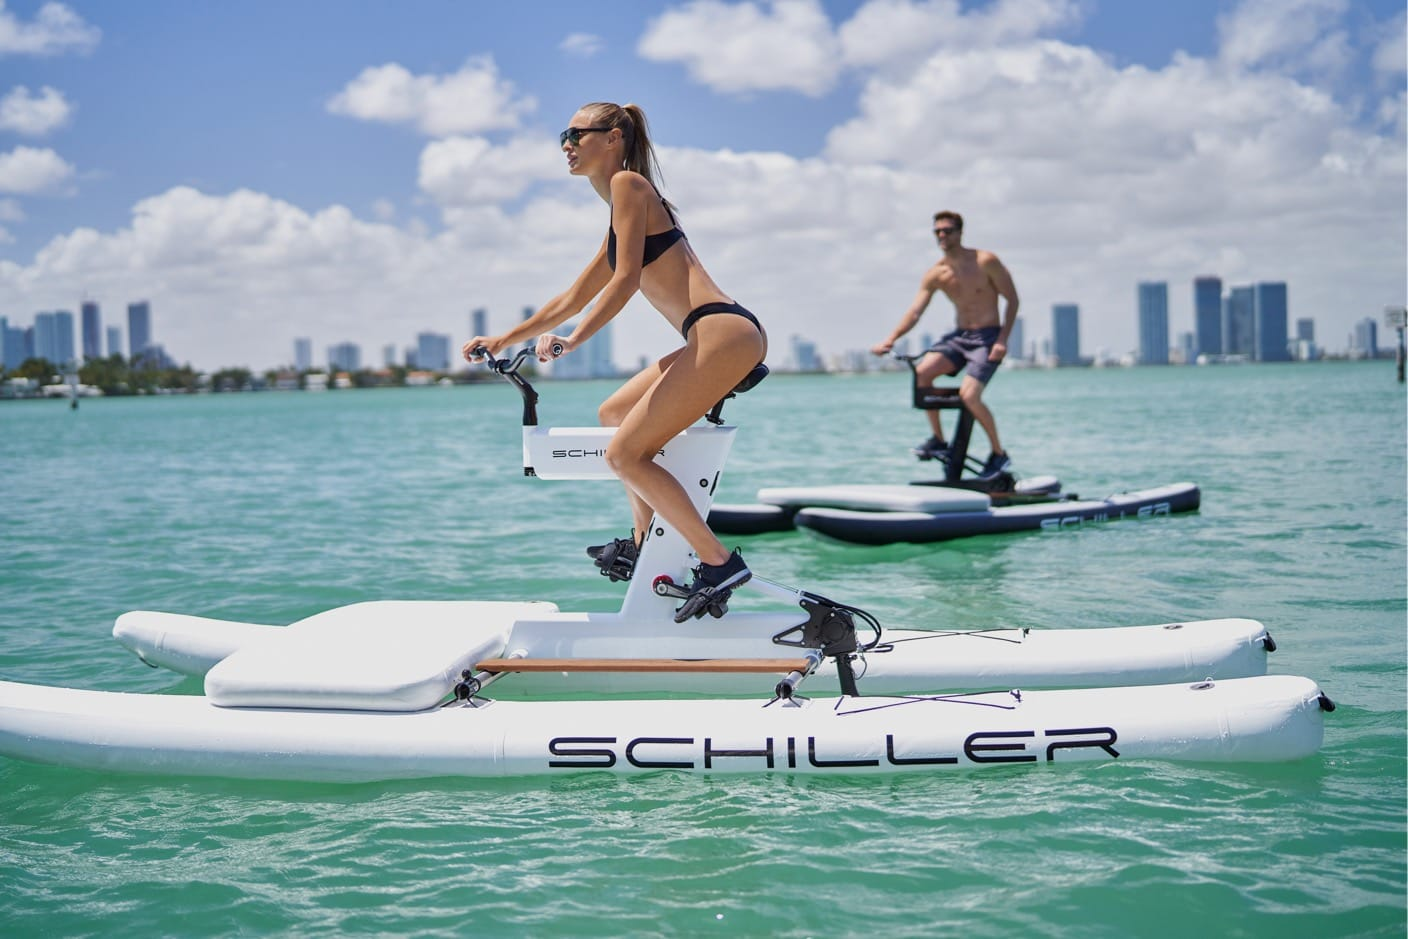 Yacht toys, woman in foreground on a Schiller sea bike, man and city skyline in background